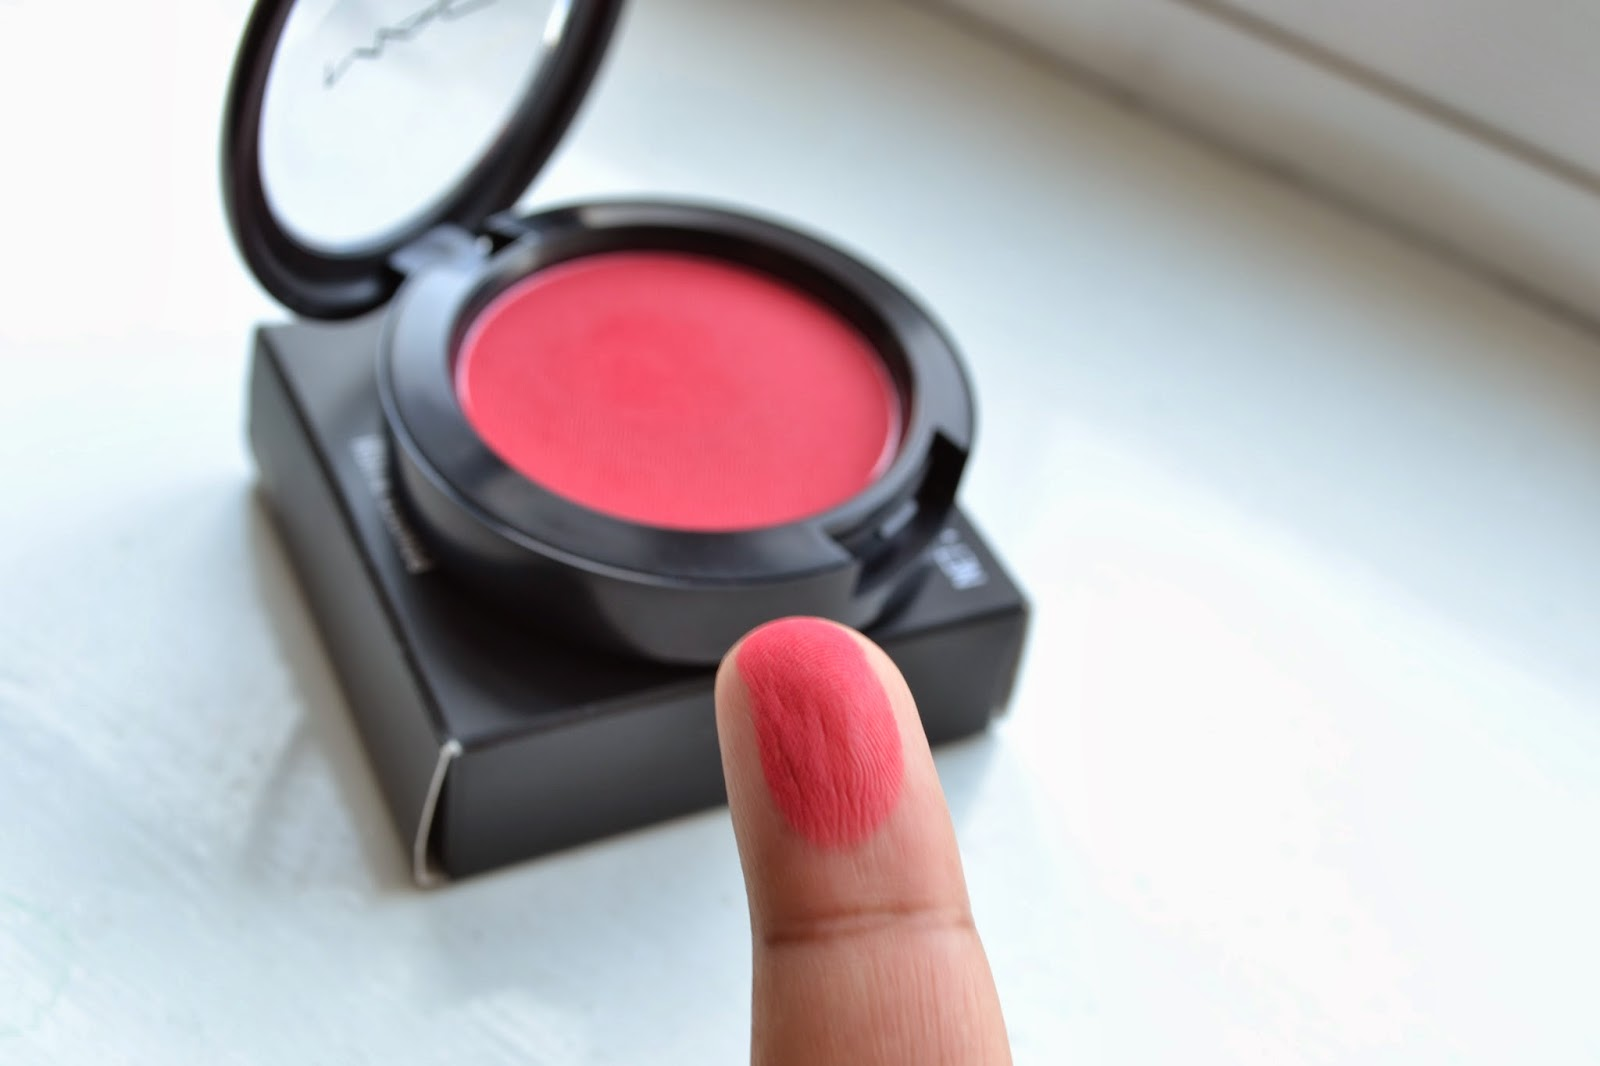 MAC Frankly Scarlet Blush Swatch - Beauty by Eff